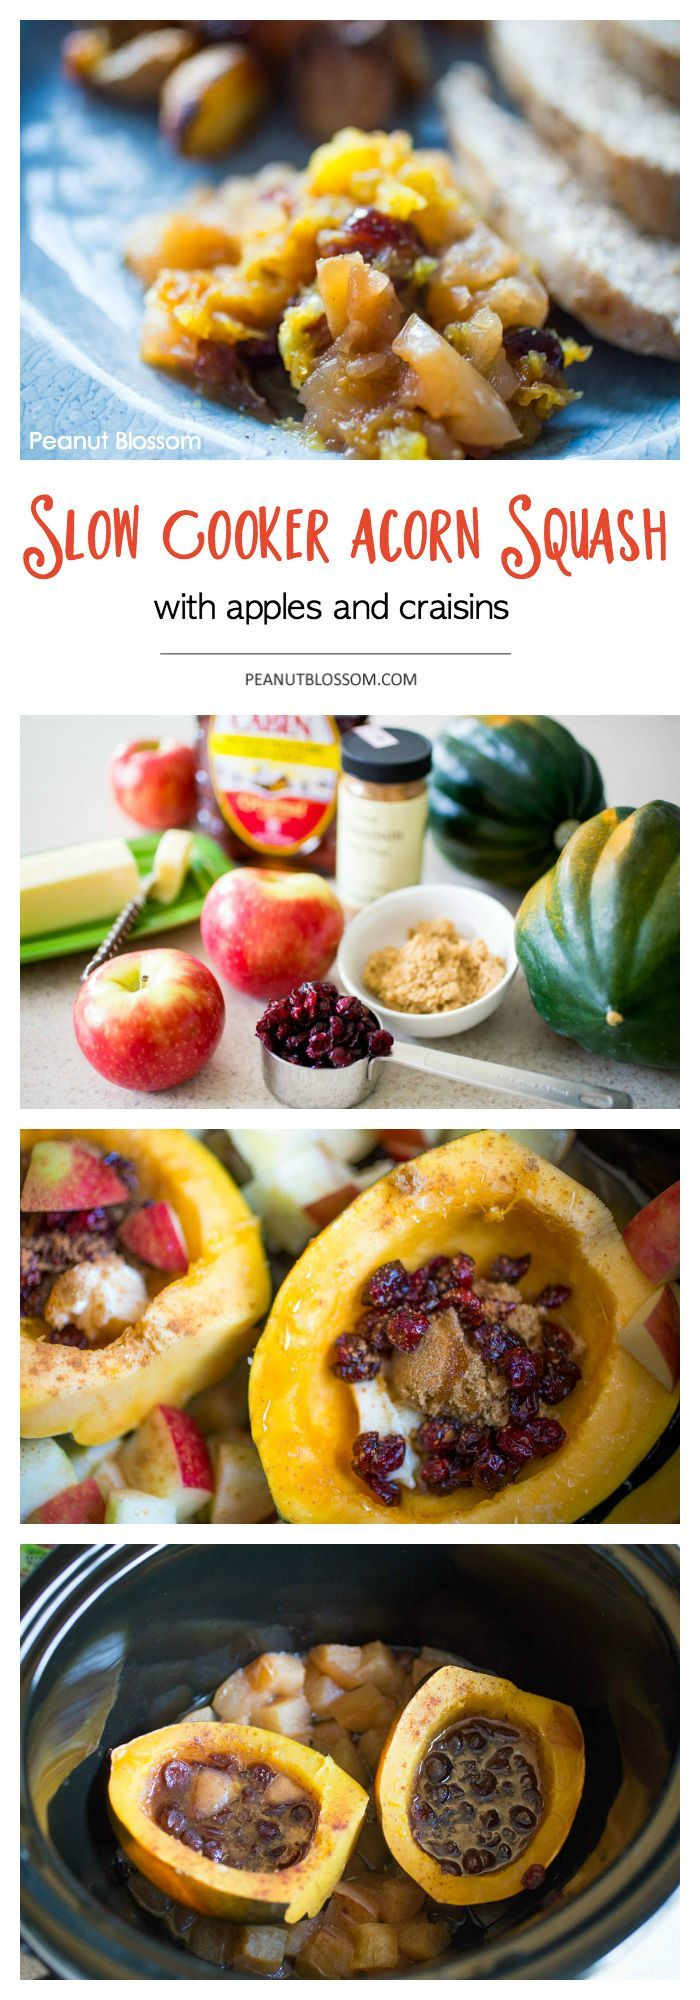 While your main dish is in the oven, make this easy side dish right in your slow cooker! Acorn squash with apples and craisins: a little brown sugar, cinnamon, and maple syrup make this the hit of a fall dinner. Would make a great thing to bring for Thanksgiving too!